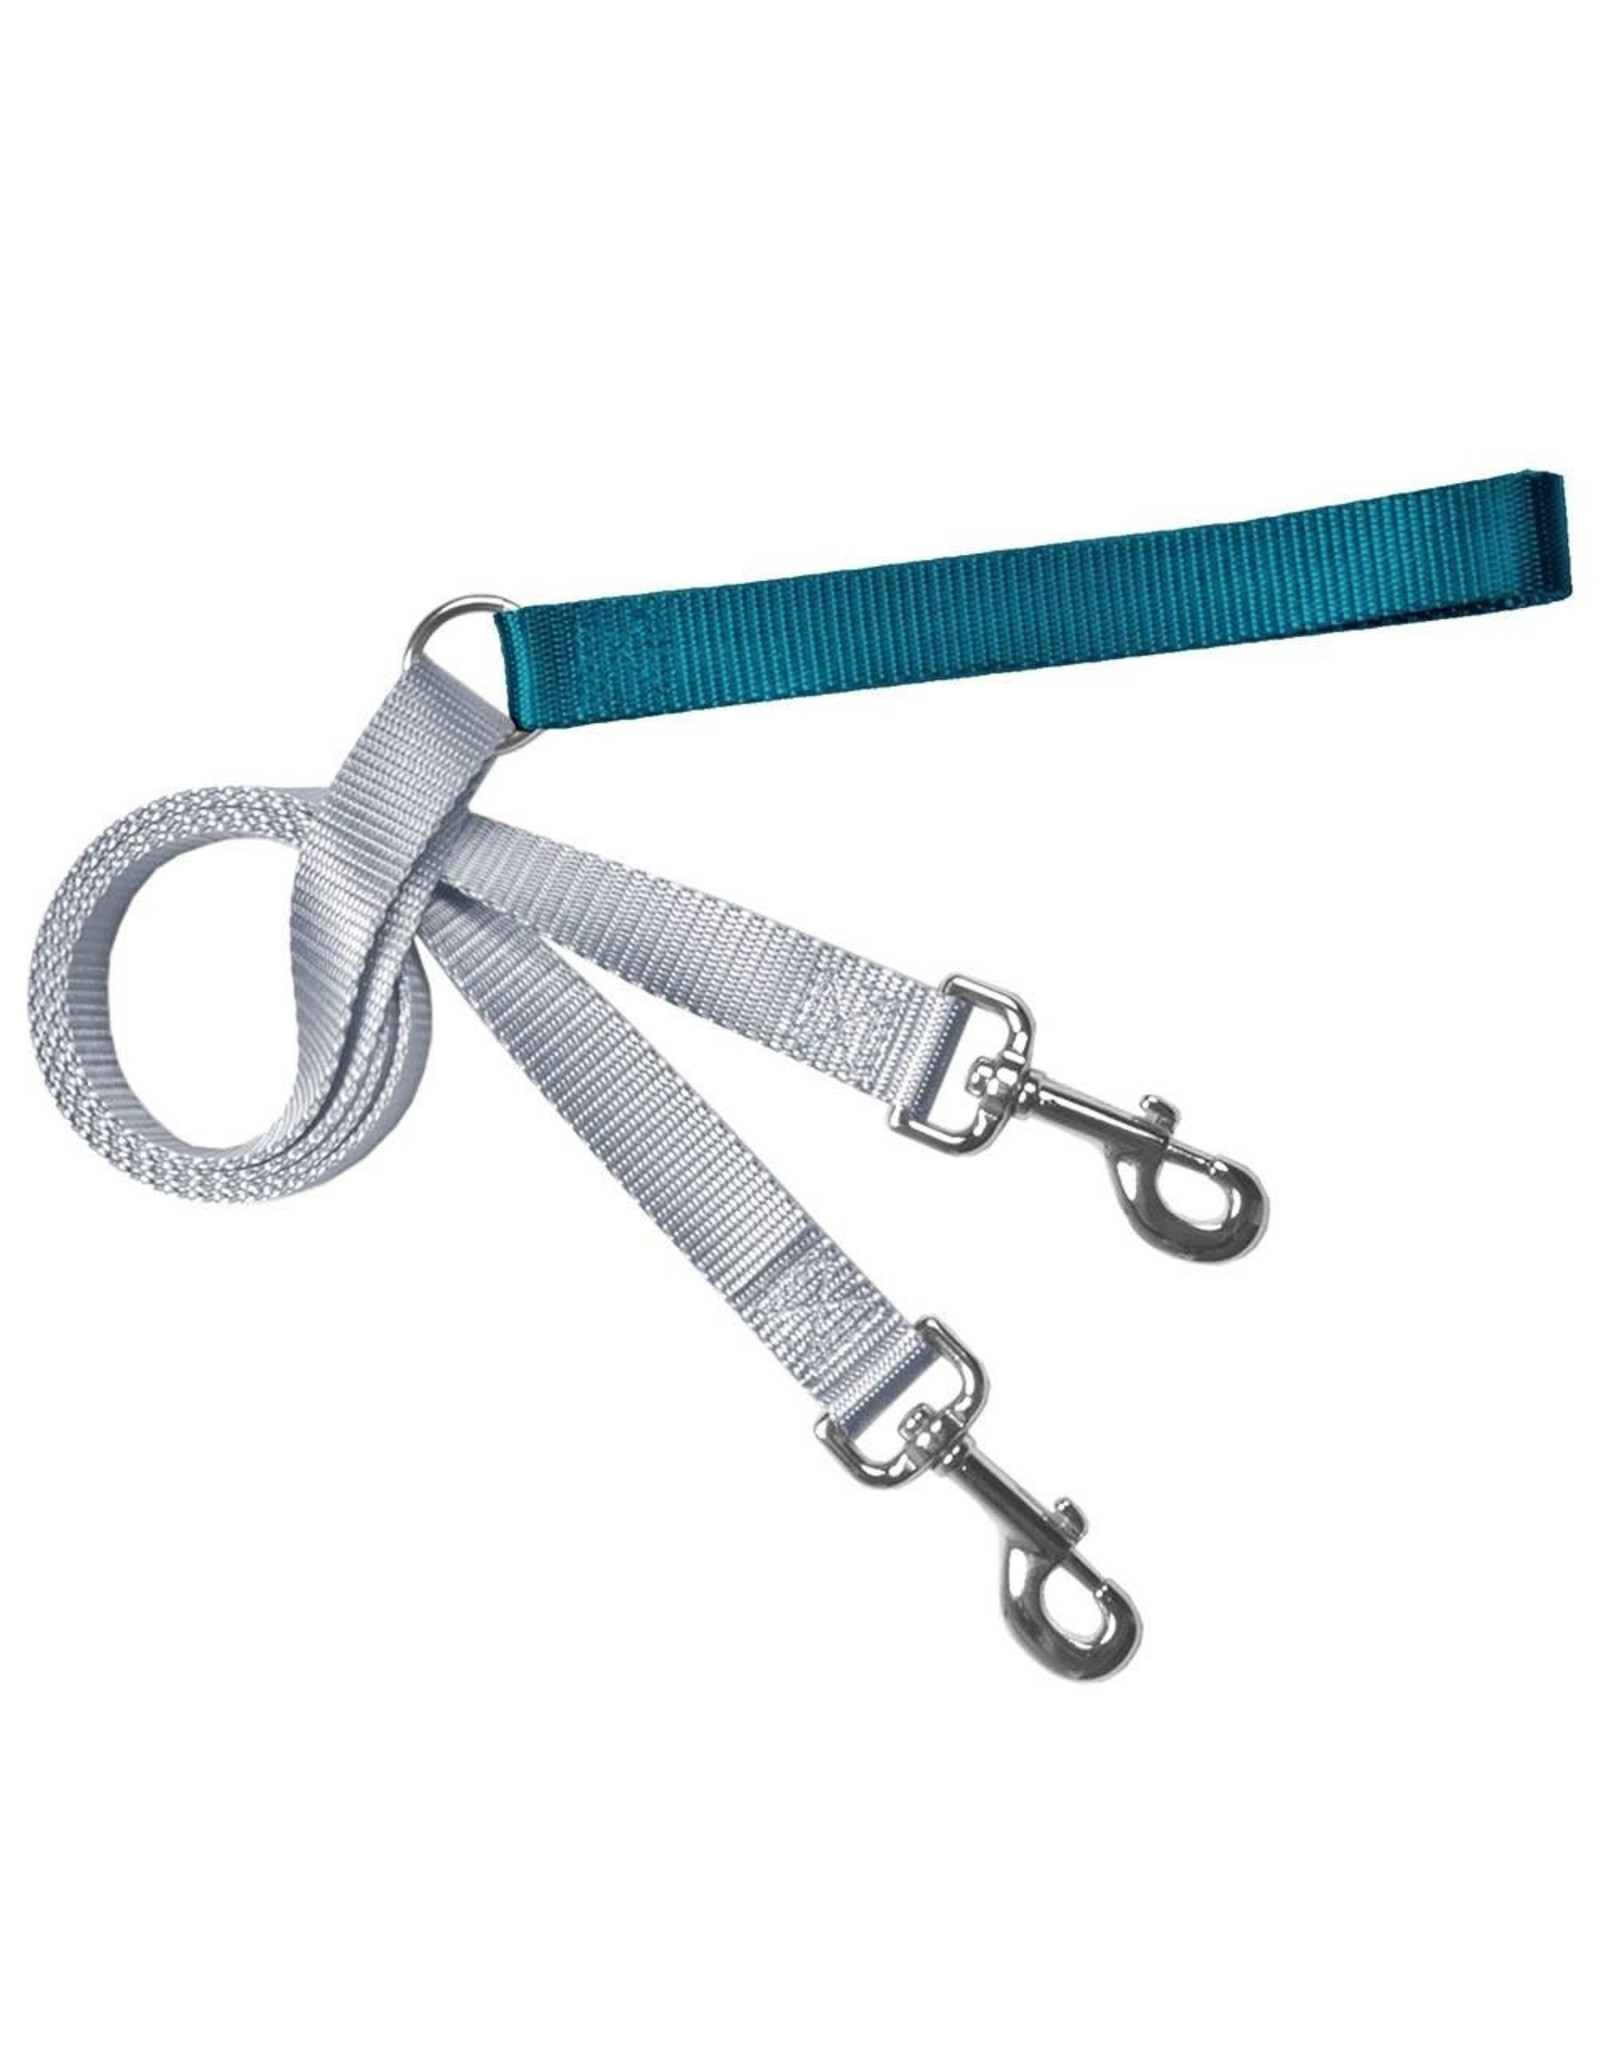 2 Hounds Design Double Connection Training Lead: Teal, 1